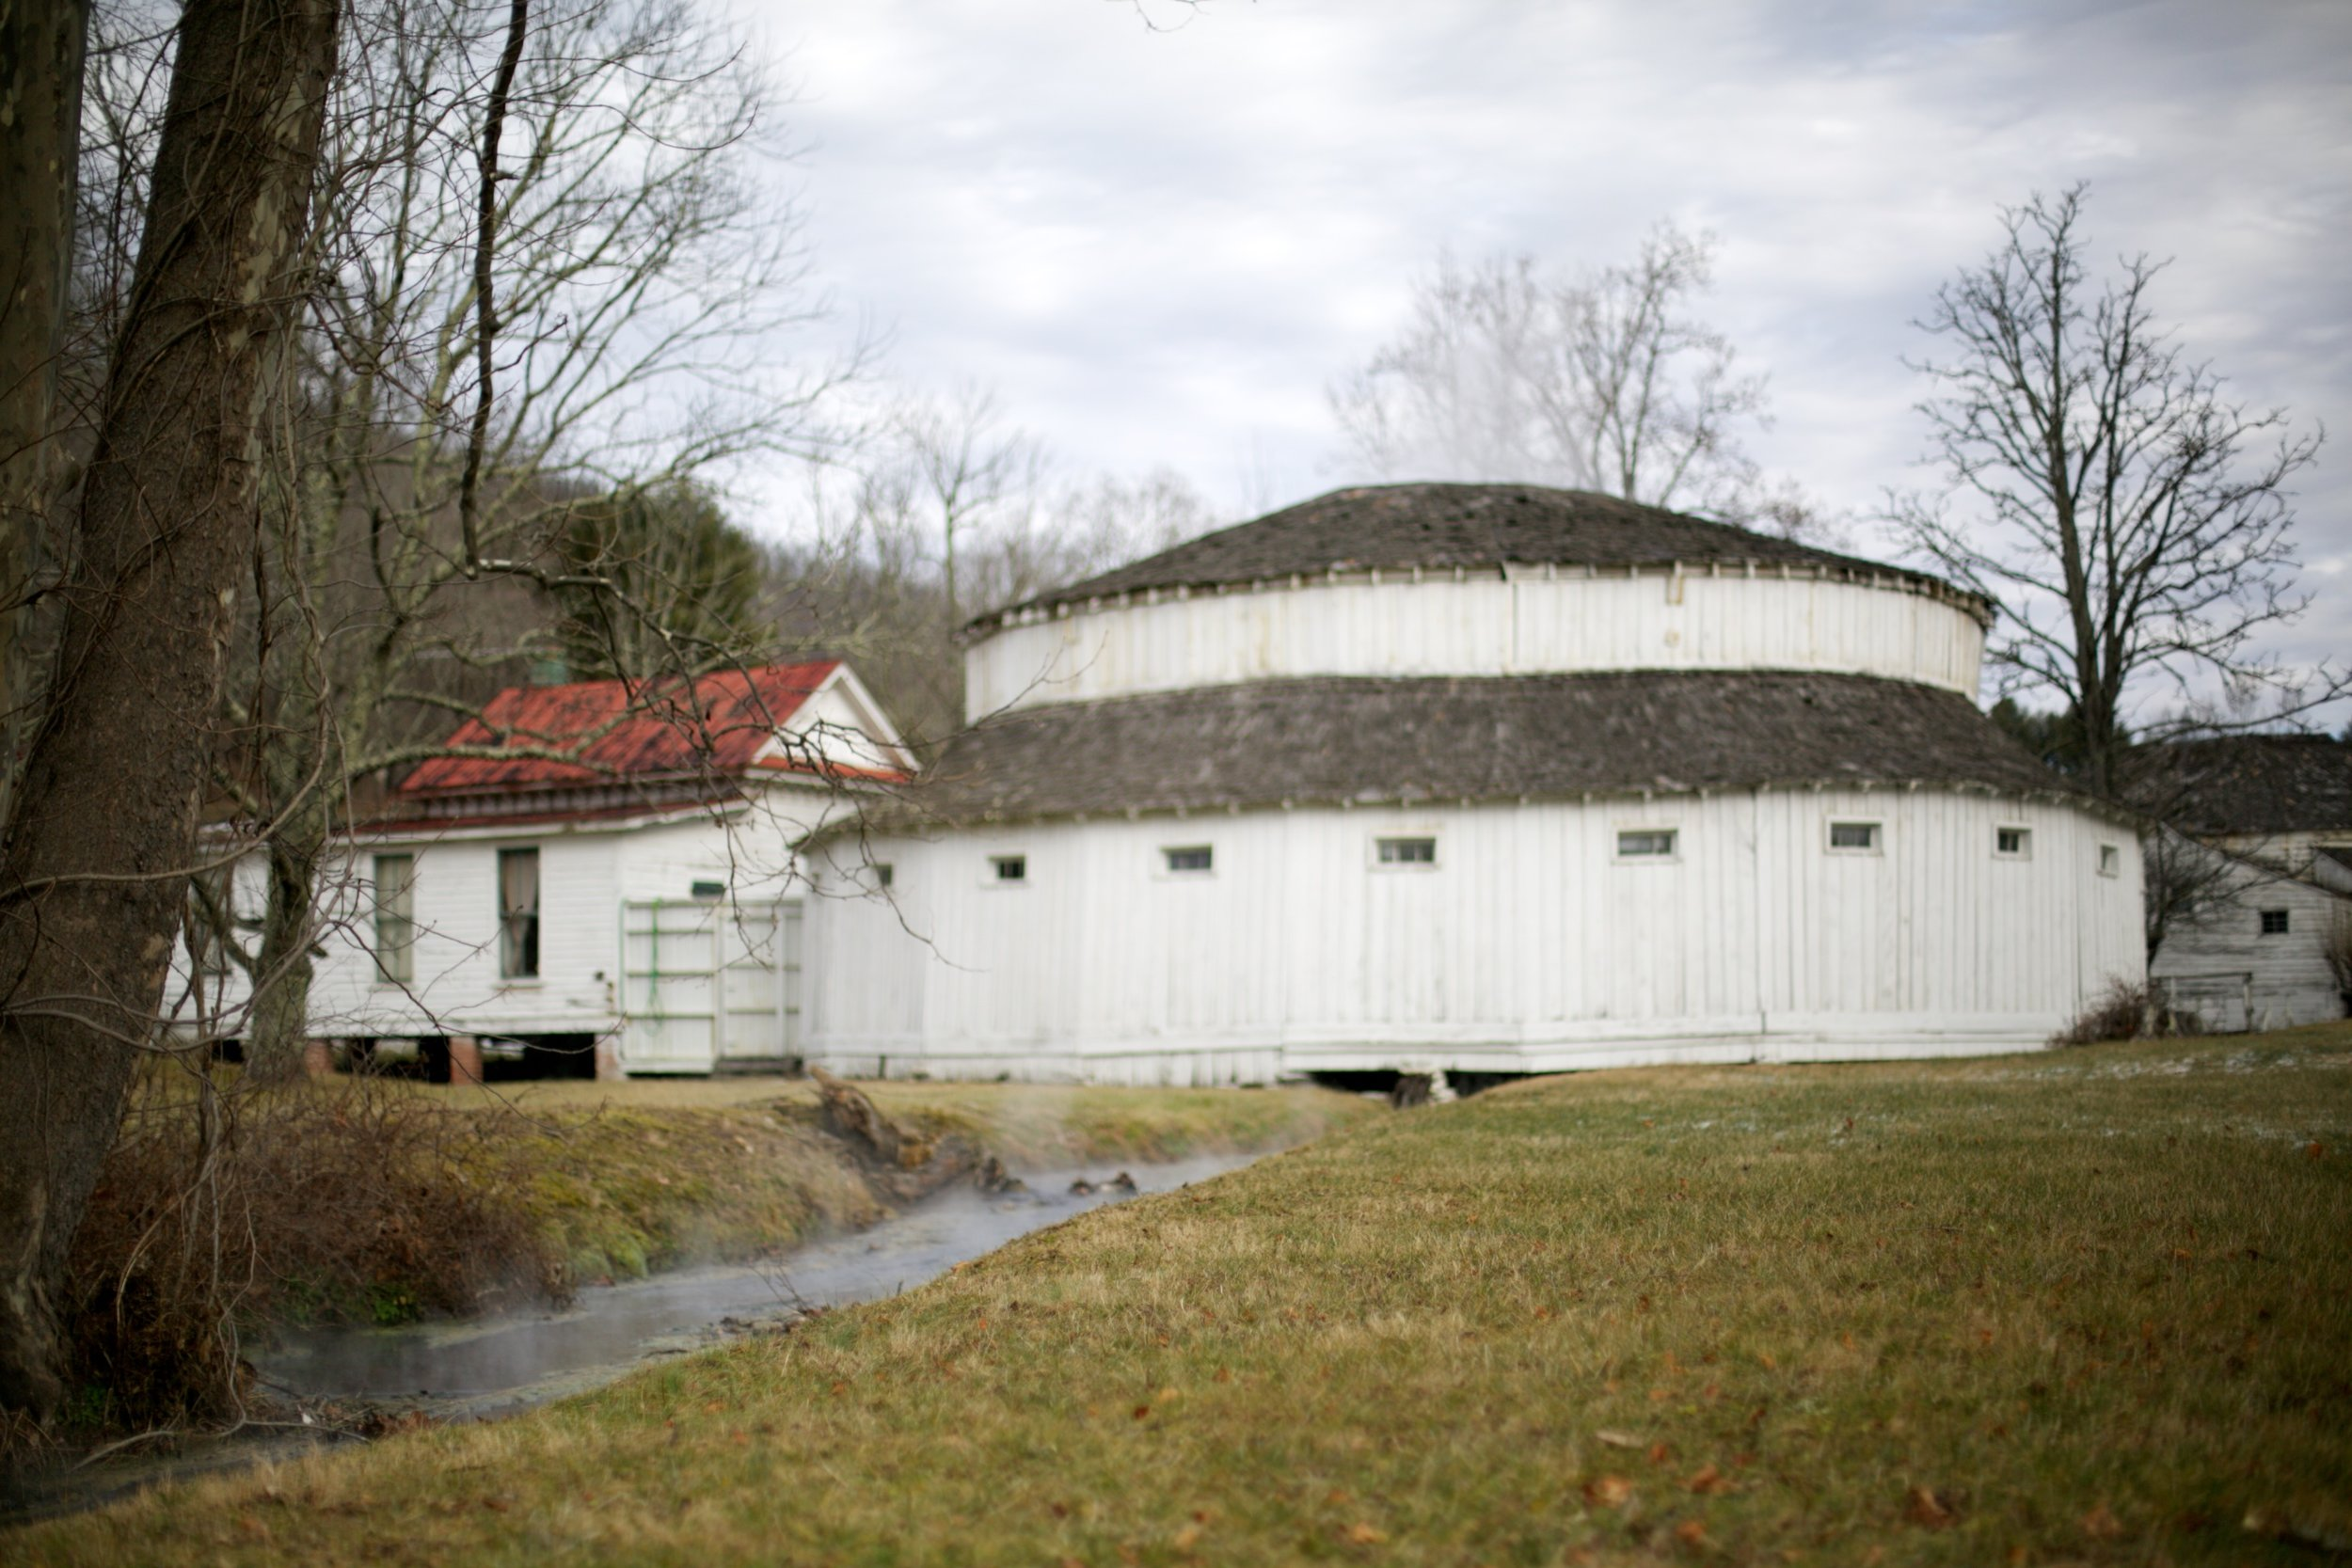 The Jefferson Pools: Permanently Closed?